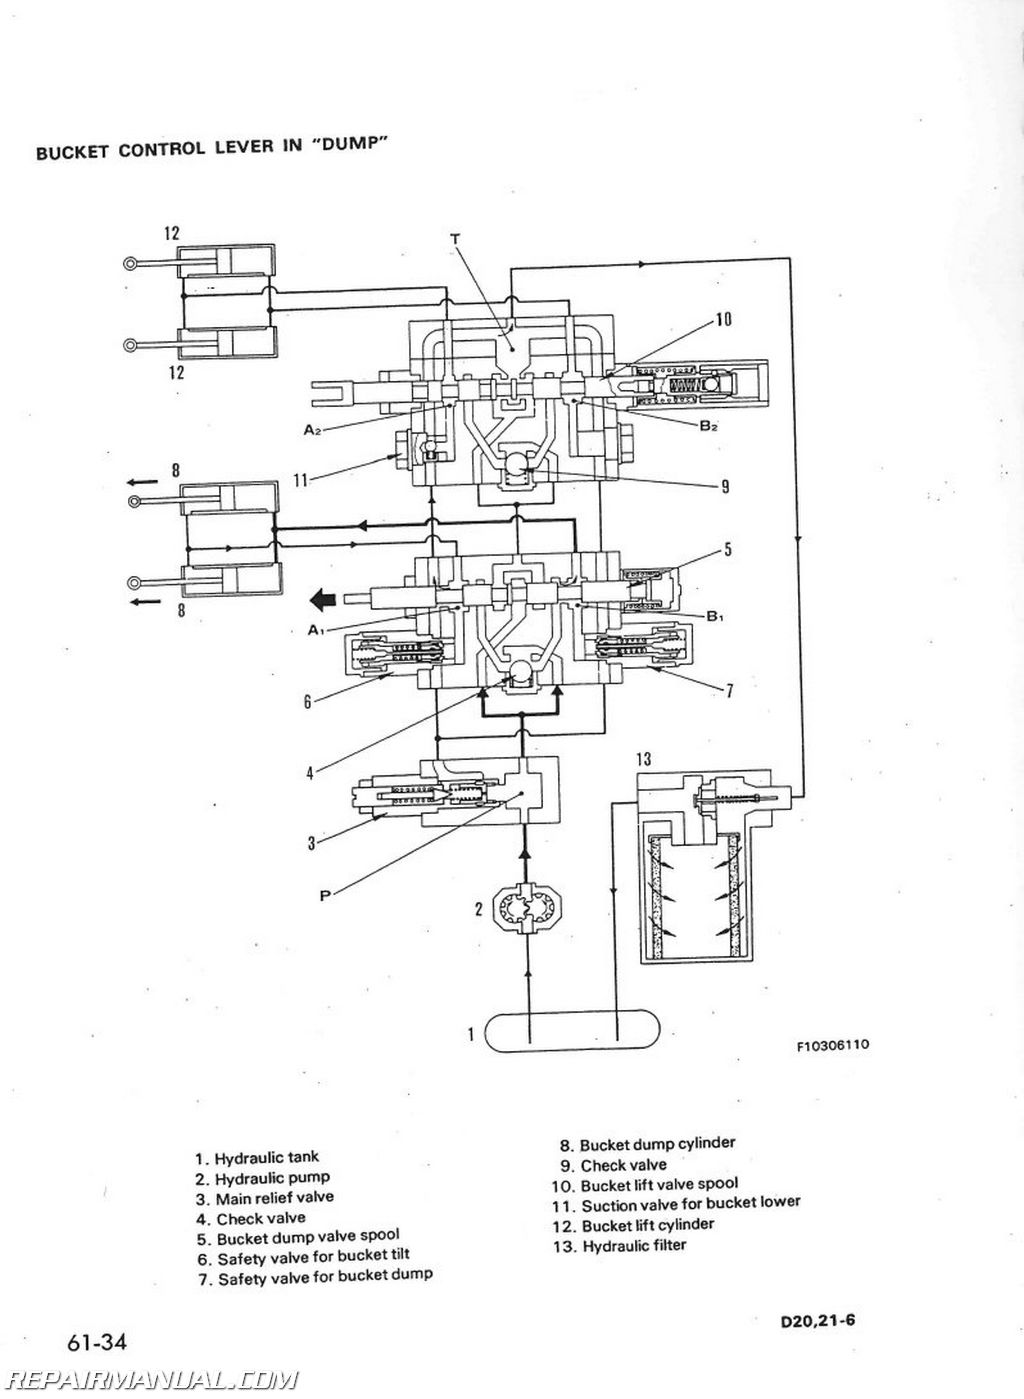 24 volt hydraulic lift wiring diagram 24 volt alternator wiring diagram komatsu dozer wiring diagram  24 volt alternator wiring diagram